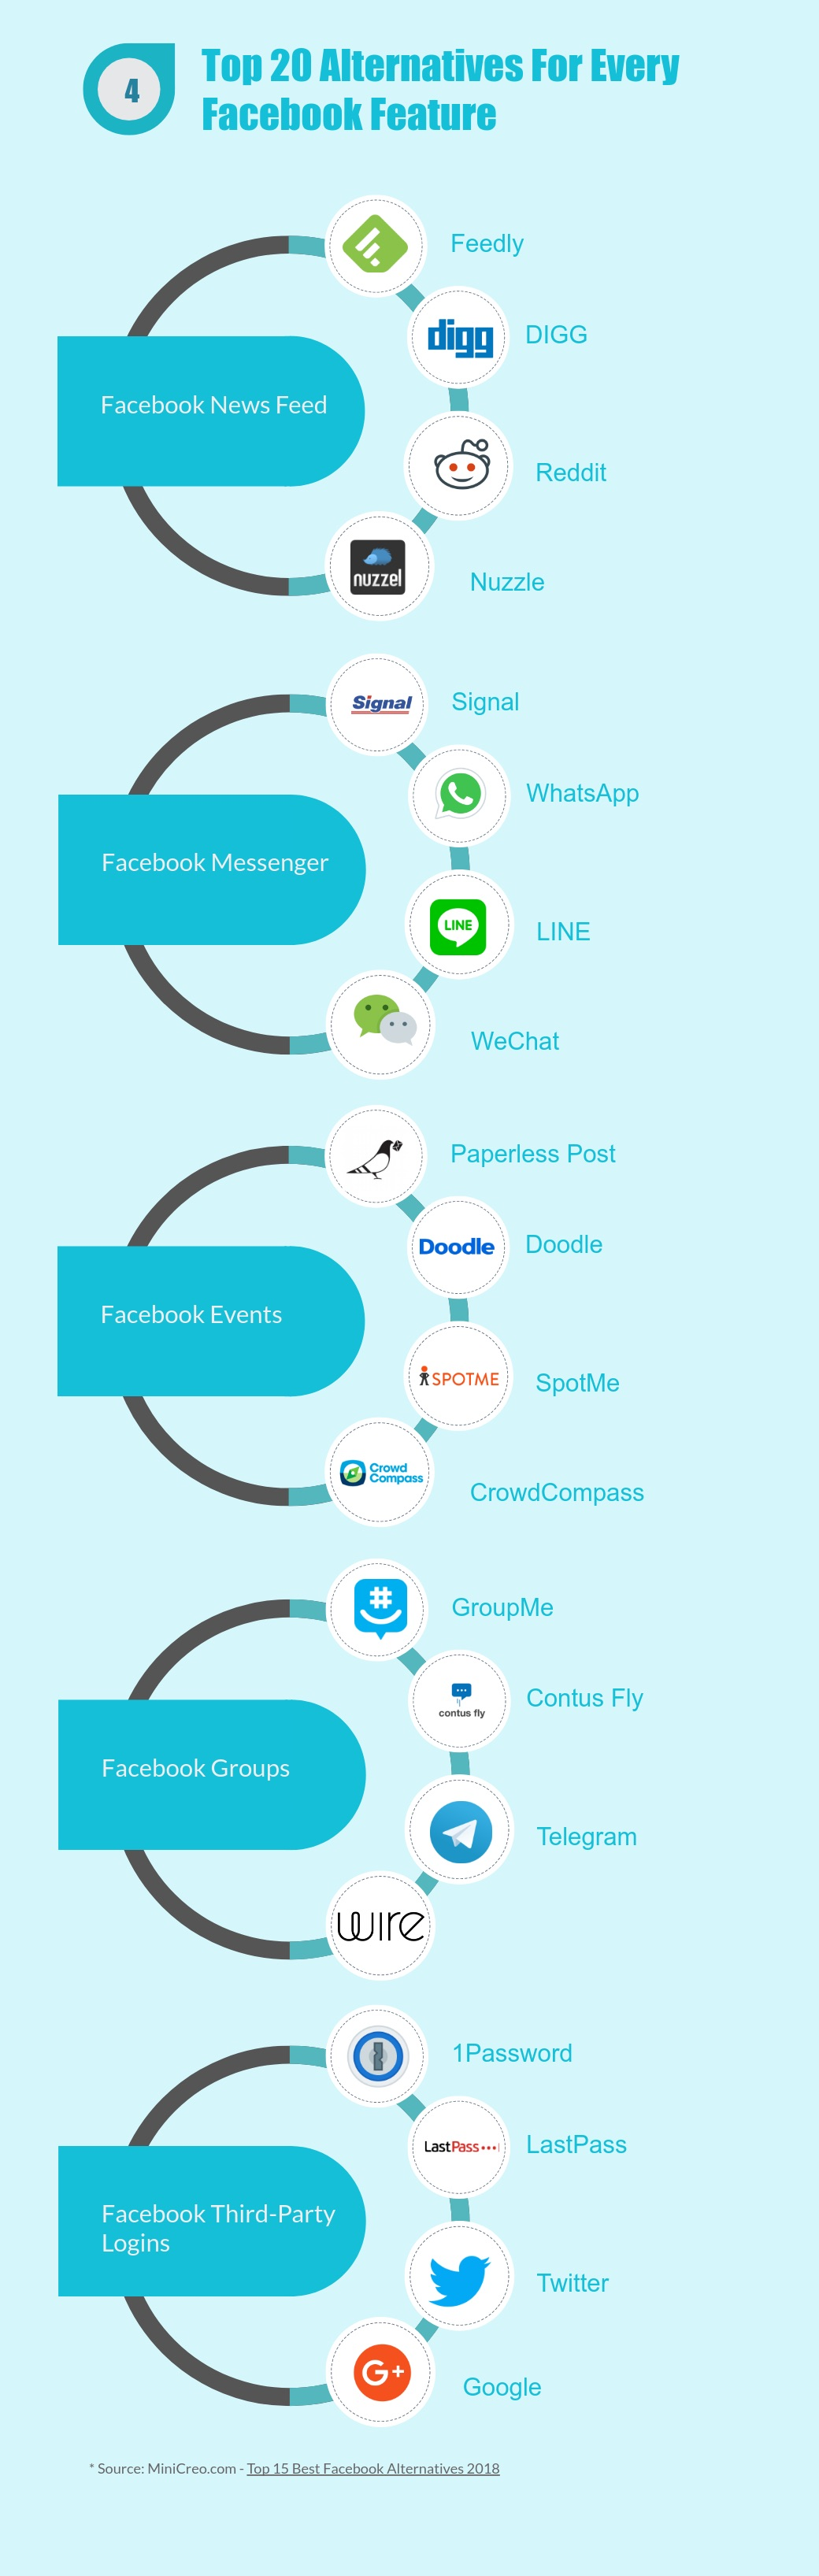 Infographic Top 20 Best Alternatives To Facebook Facebook Fun Facts Minicreo